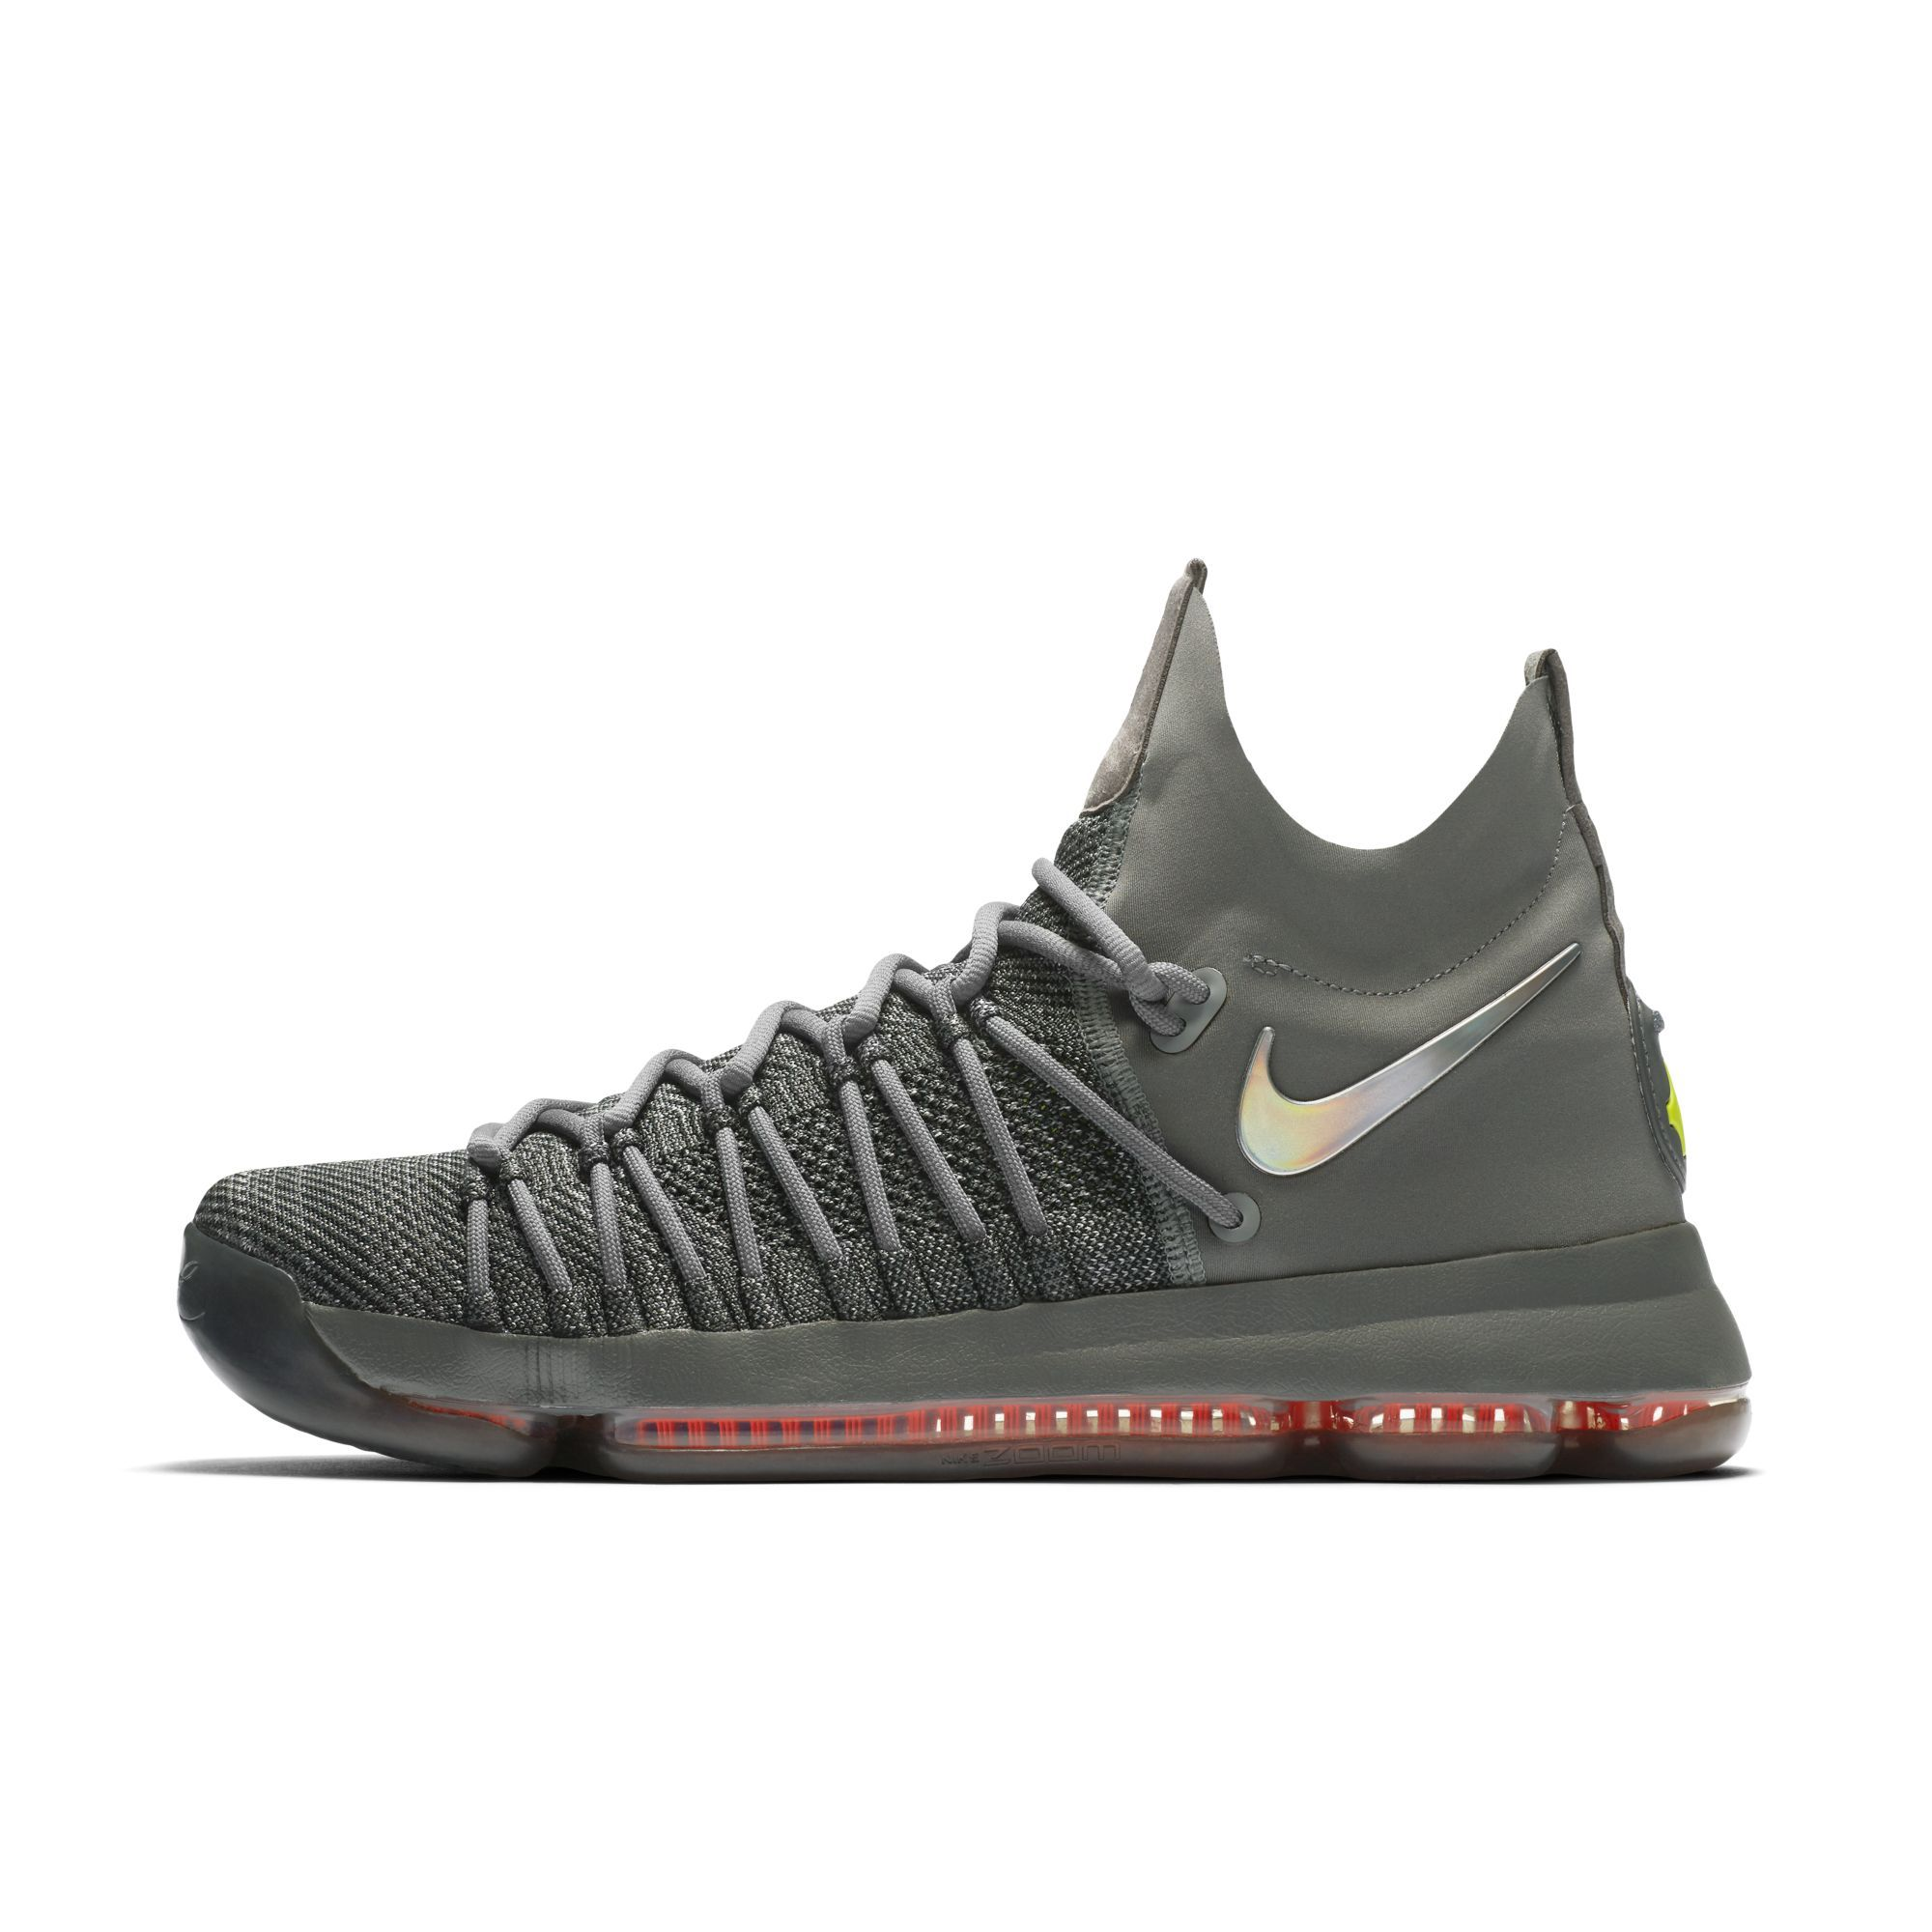 5a24ac9b9bb ... wholesale an official look at the nike kd 9 elite weartesters 82543  2ecb0